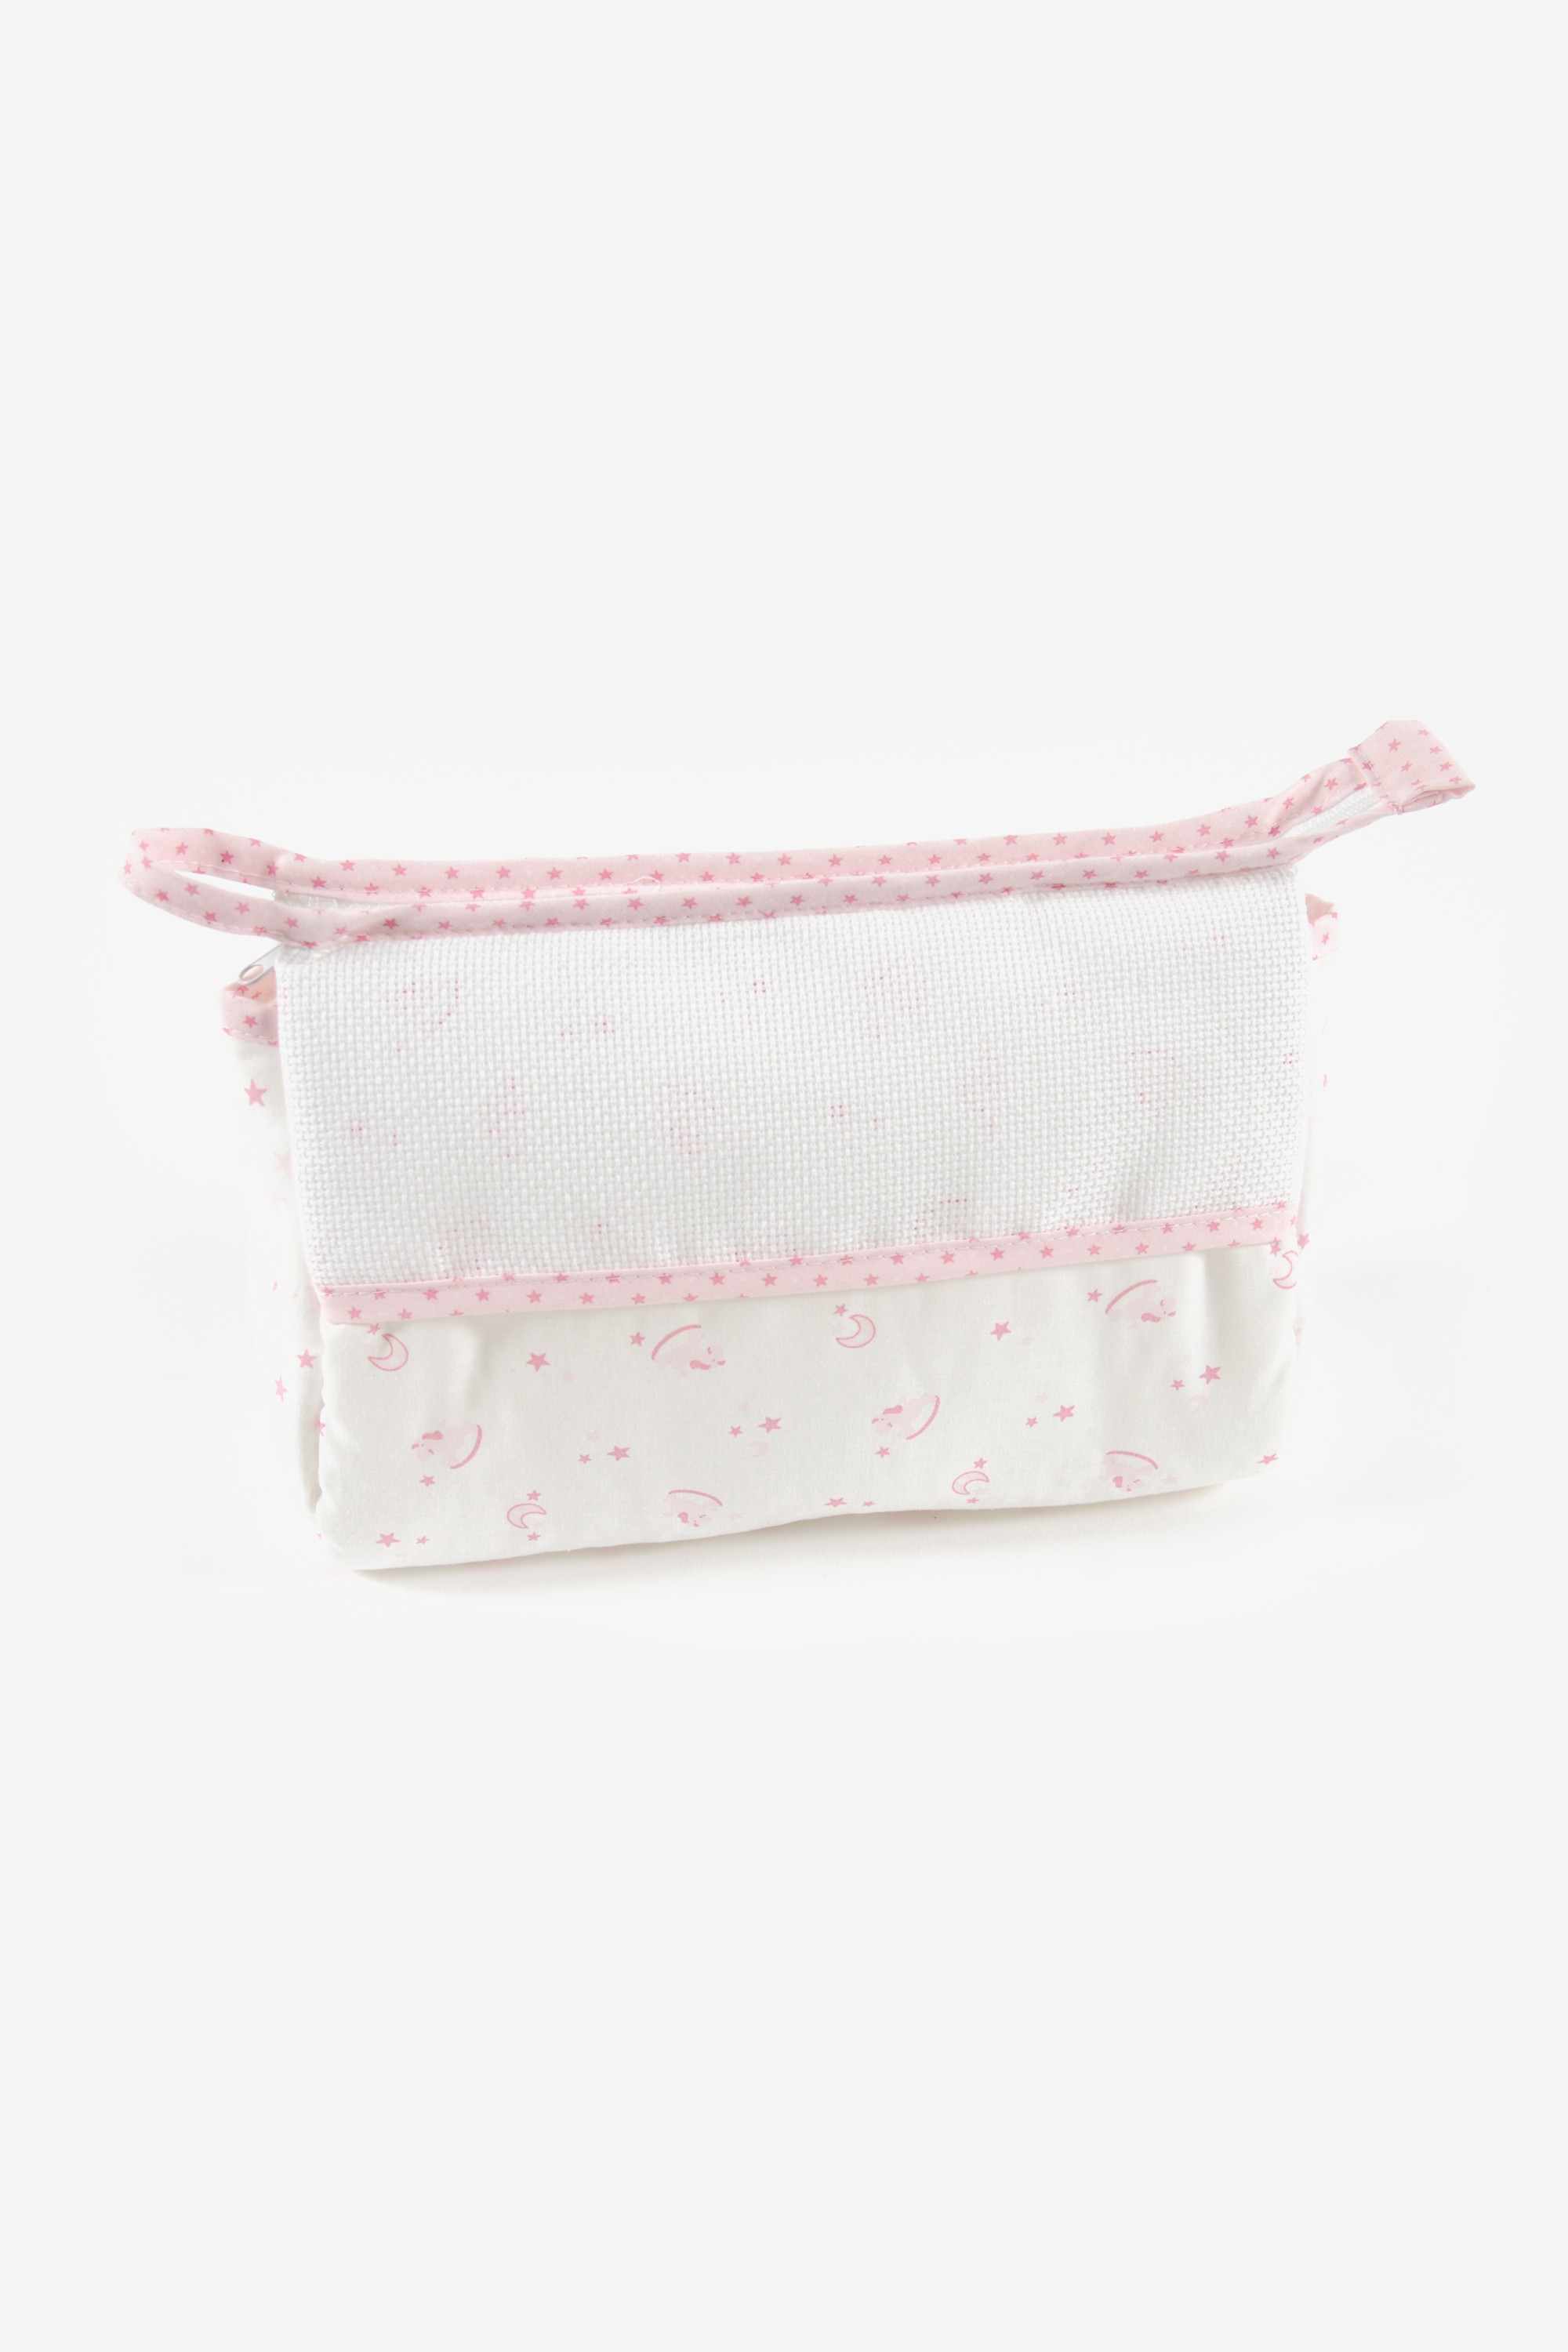 DMC Pink Toiletry Bag